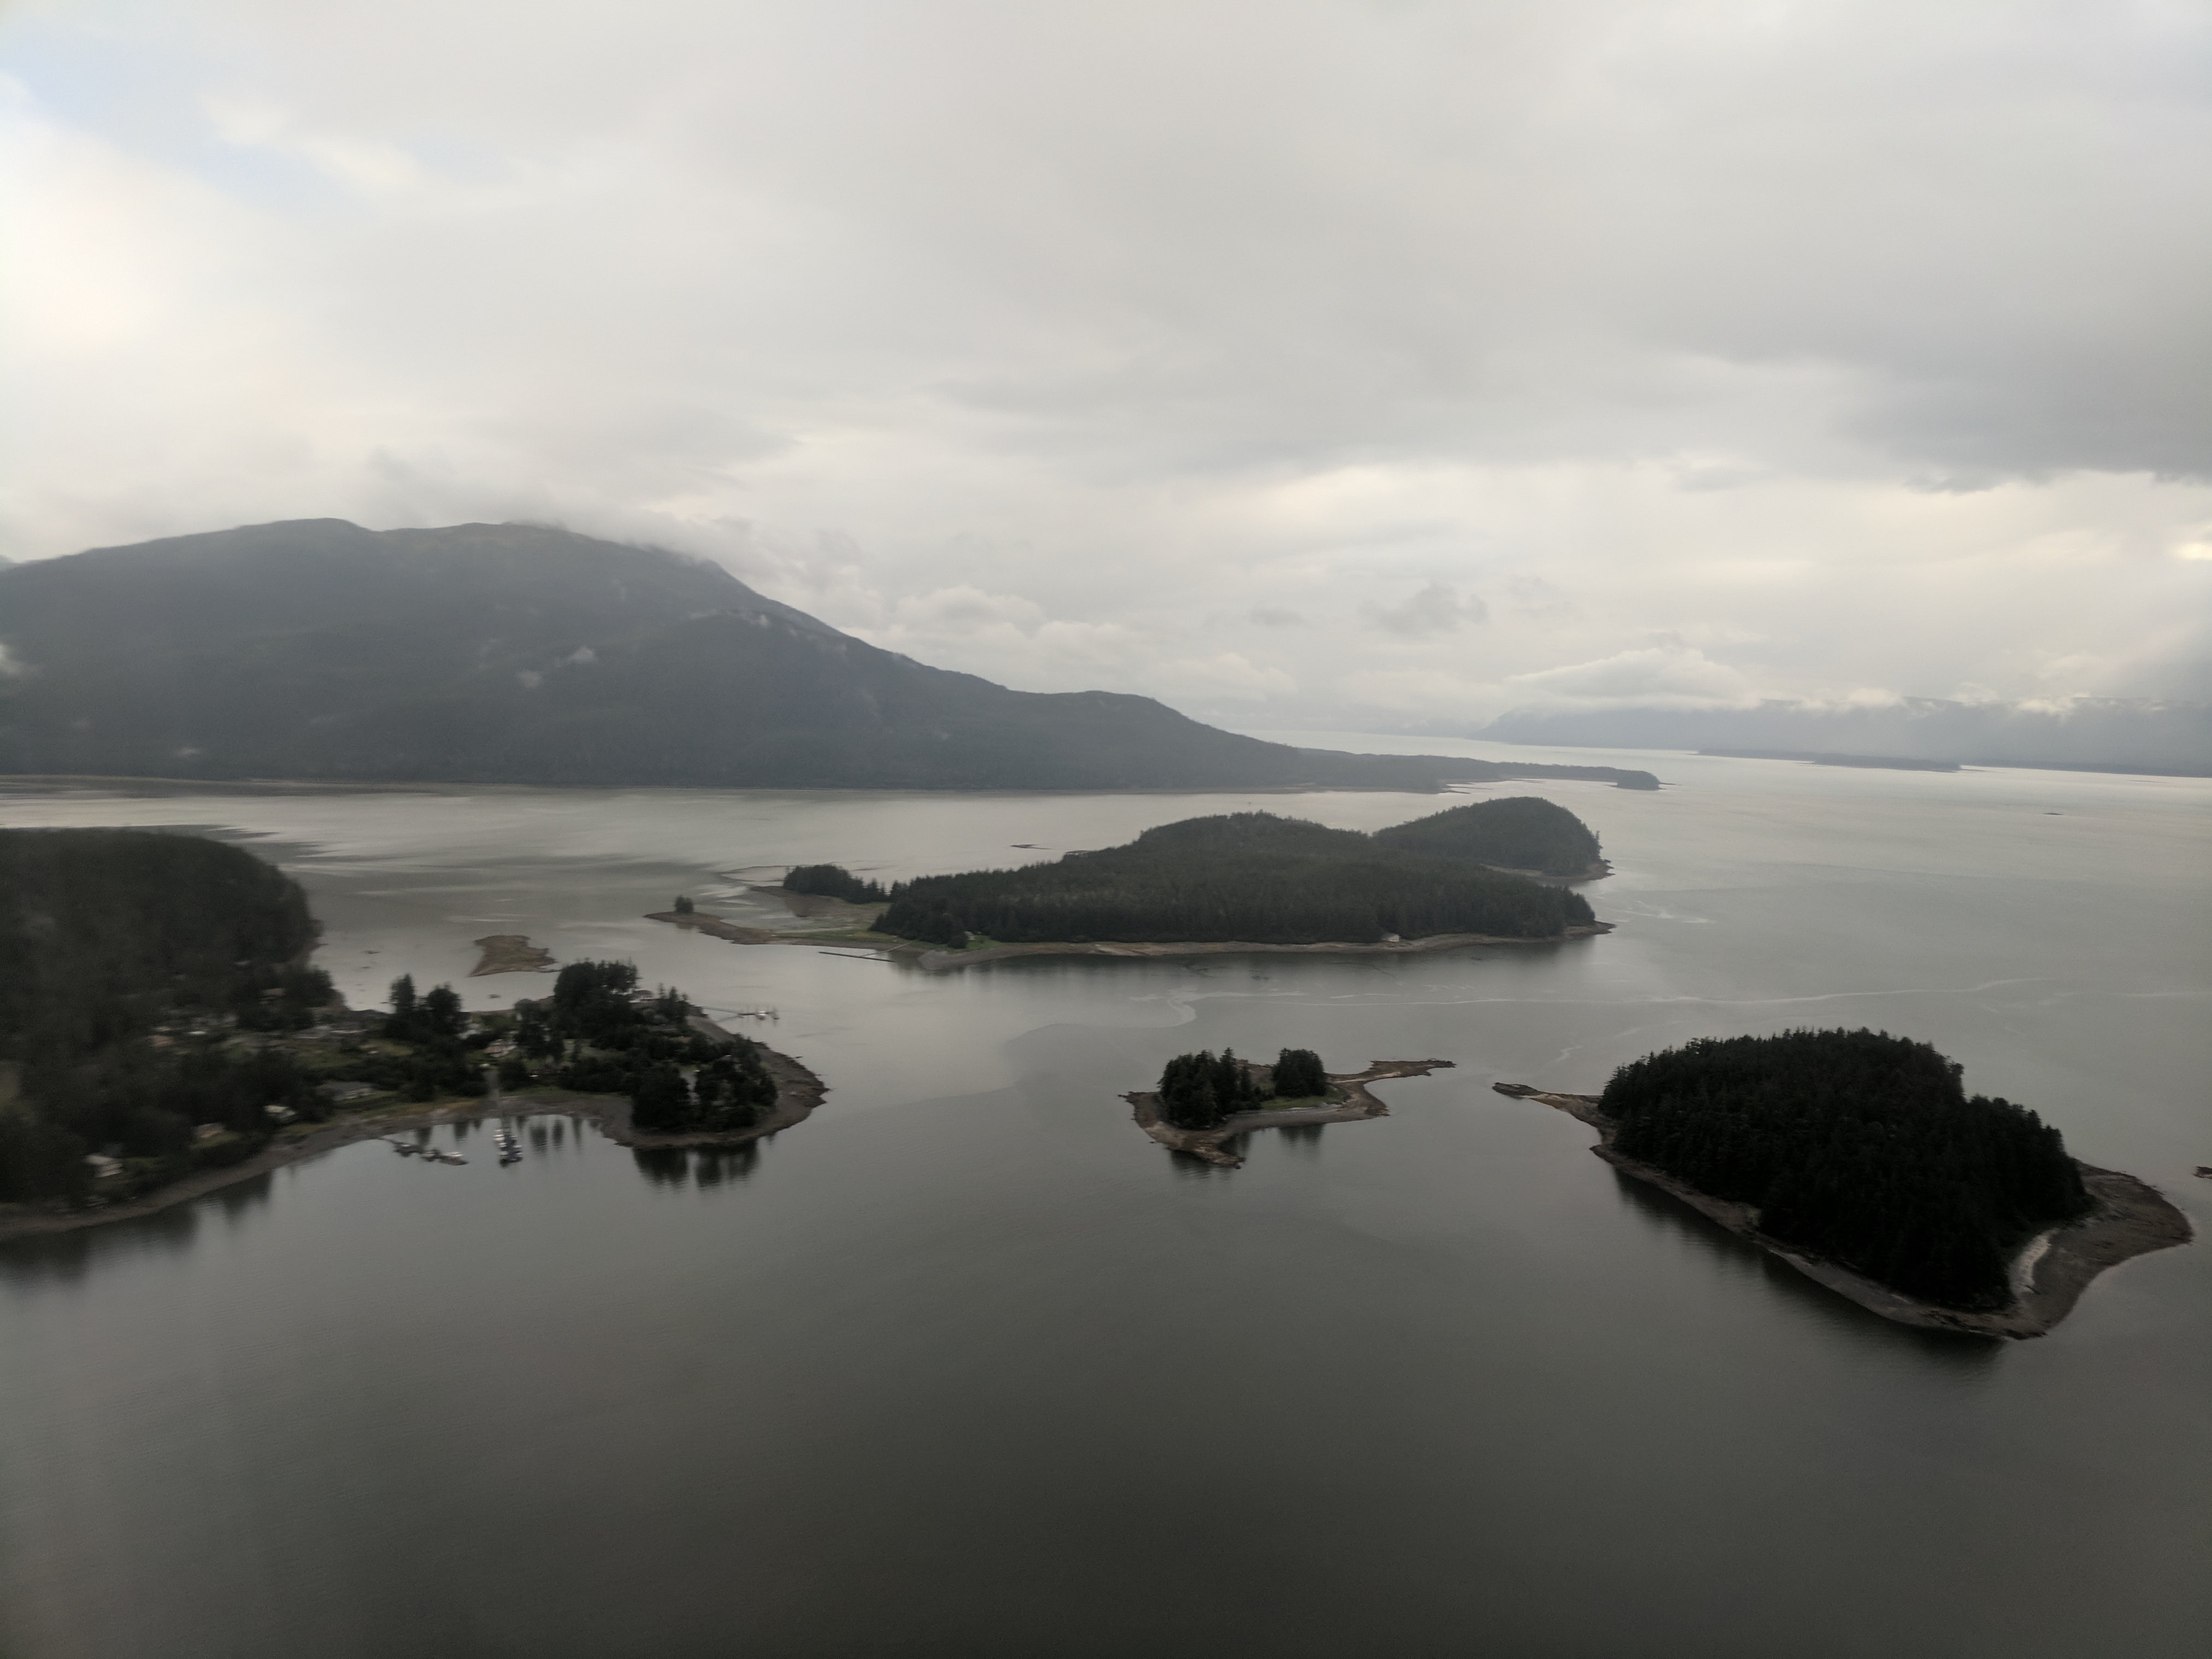 Islands at the mouth of Mendenhall River